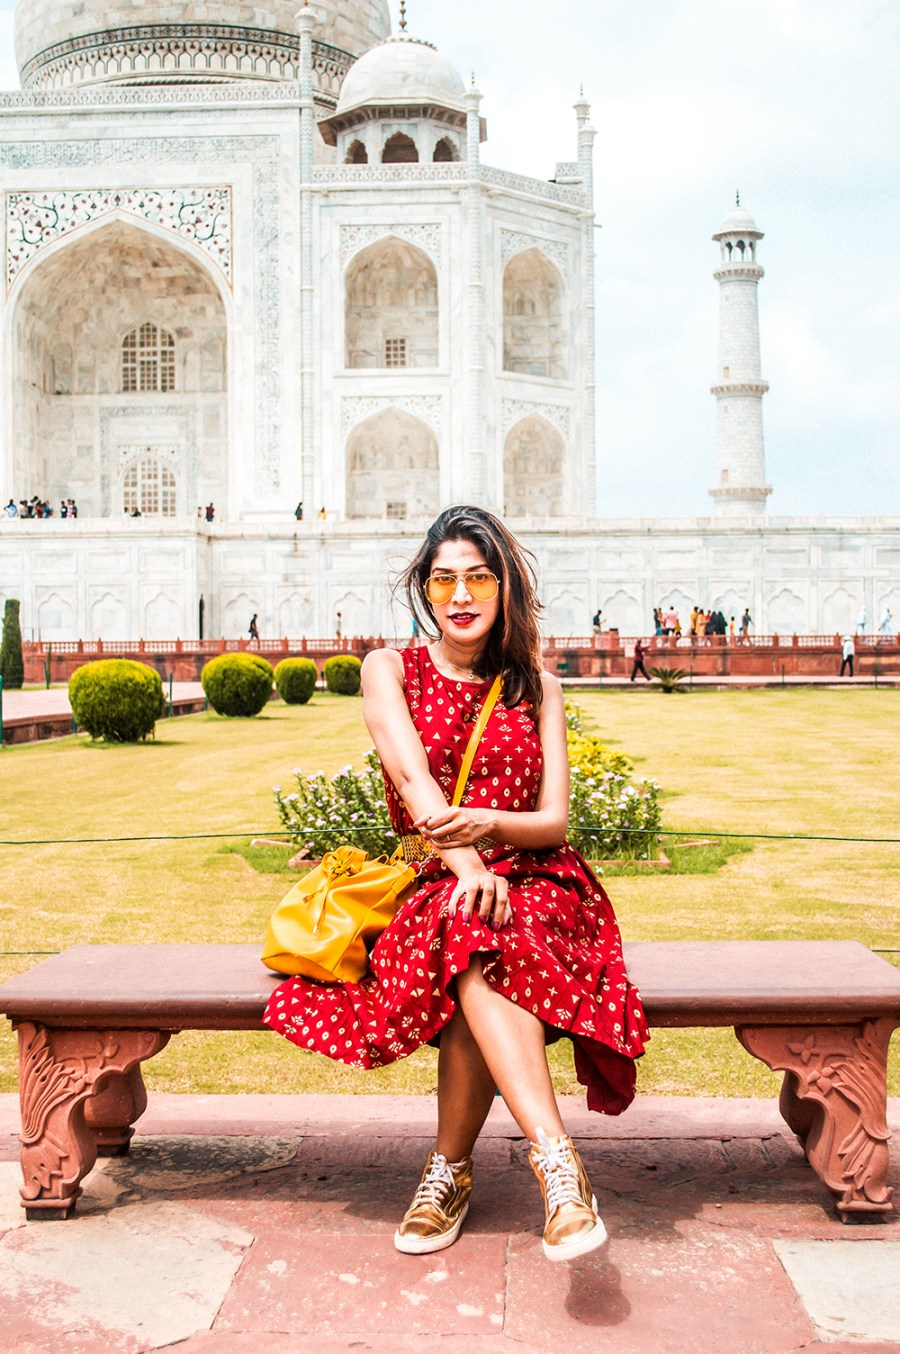 Style Over Coffee, Taj Mahal, Travel, India, Fashion Blogger, Influencer, Ethnic Dress, Sarmistha Goswami, Indian Blogger-1